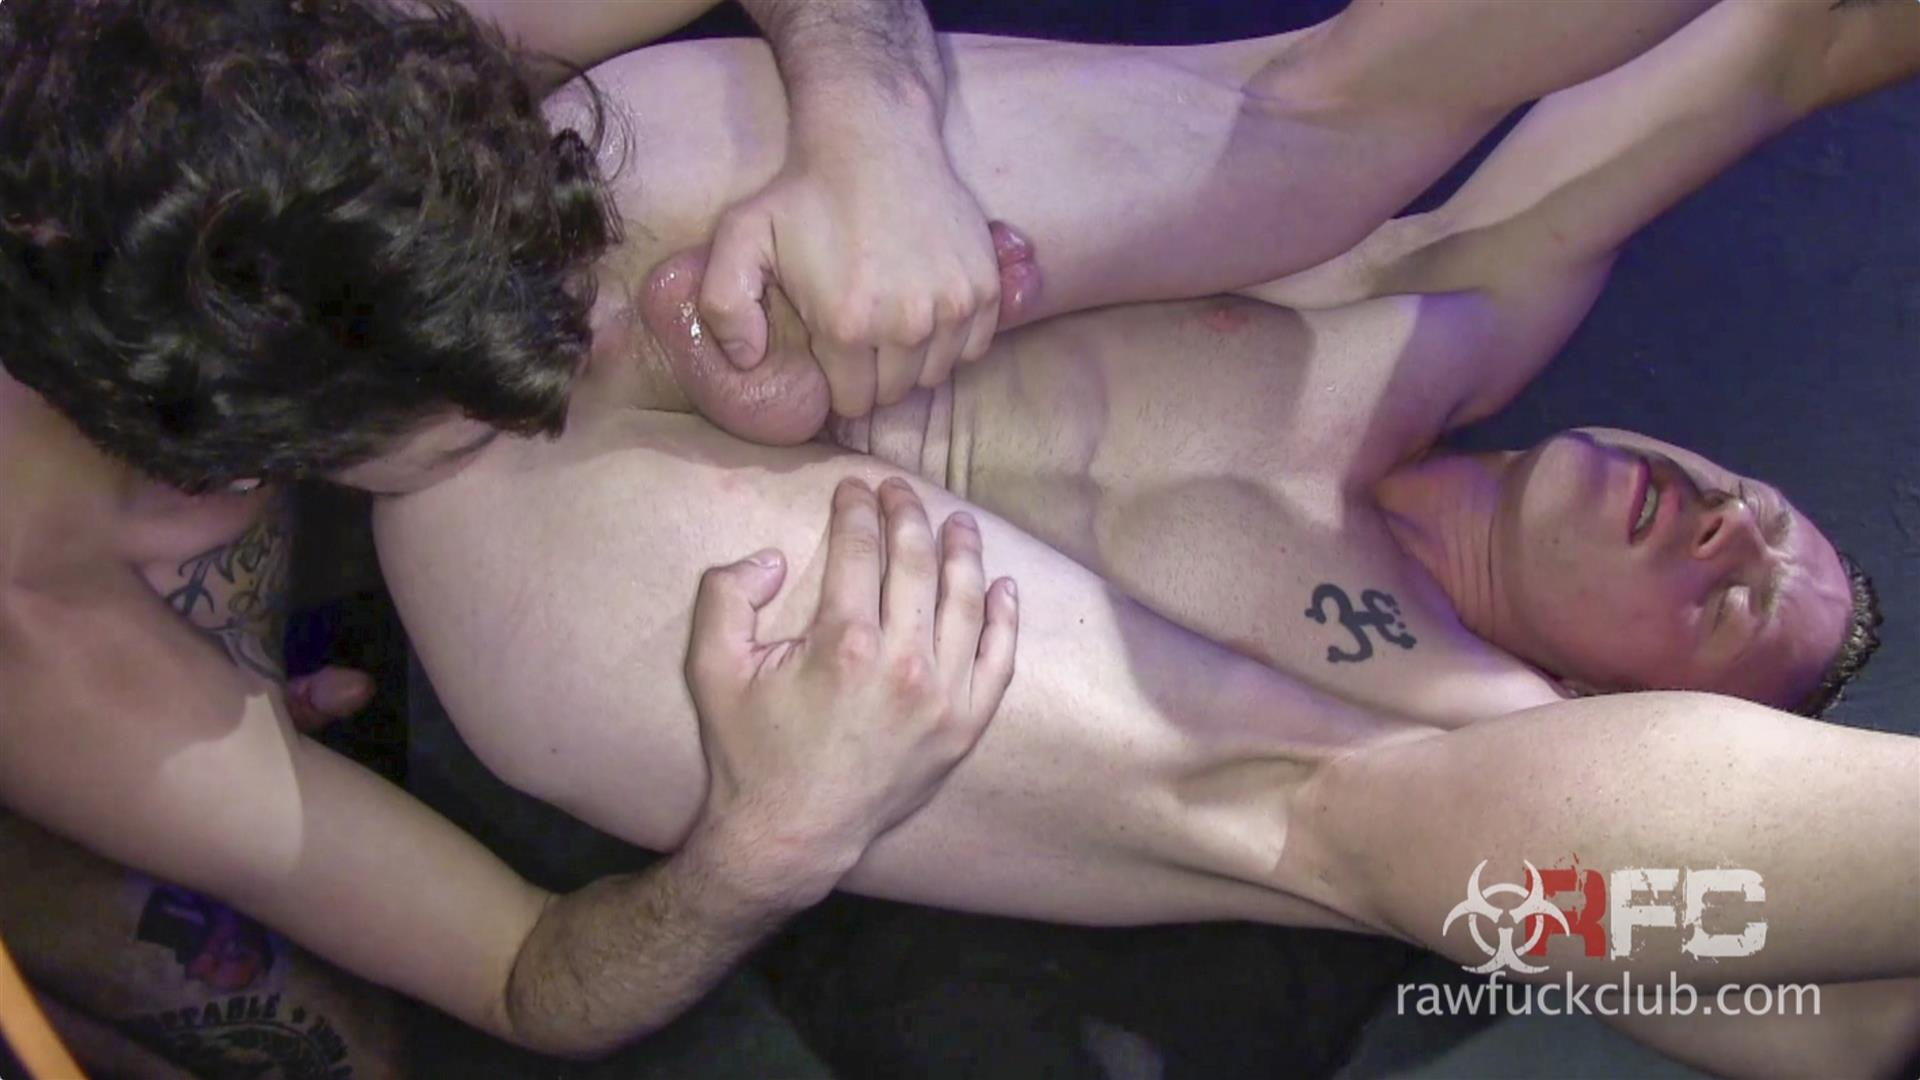 Raw Fuck Club Saxon West and Luke Harding Big Dick Bareback Sex Amateur Gay Porn 6 Luke Harding Breeding Saxon Wests Muscular Ass